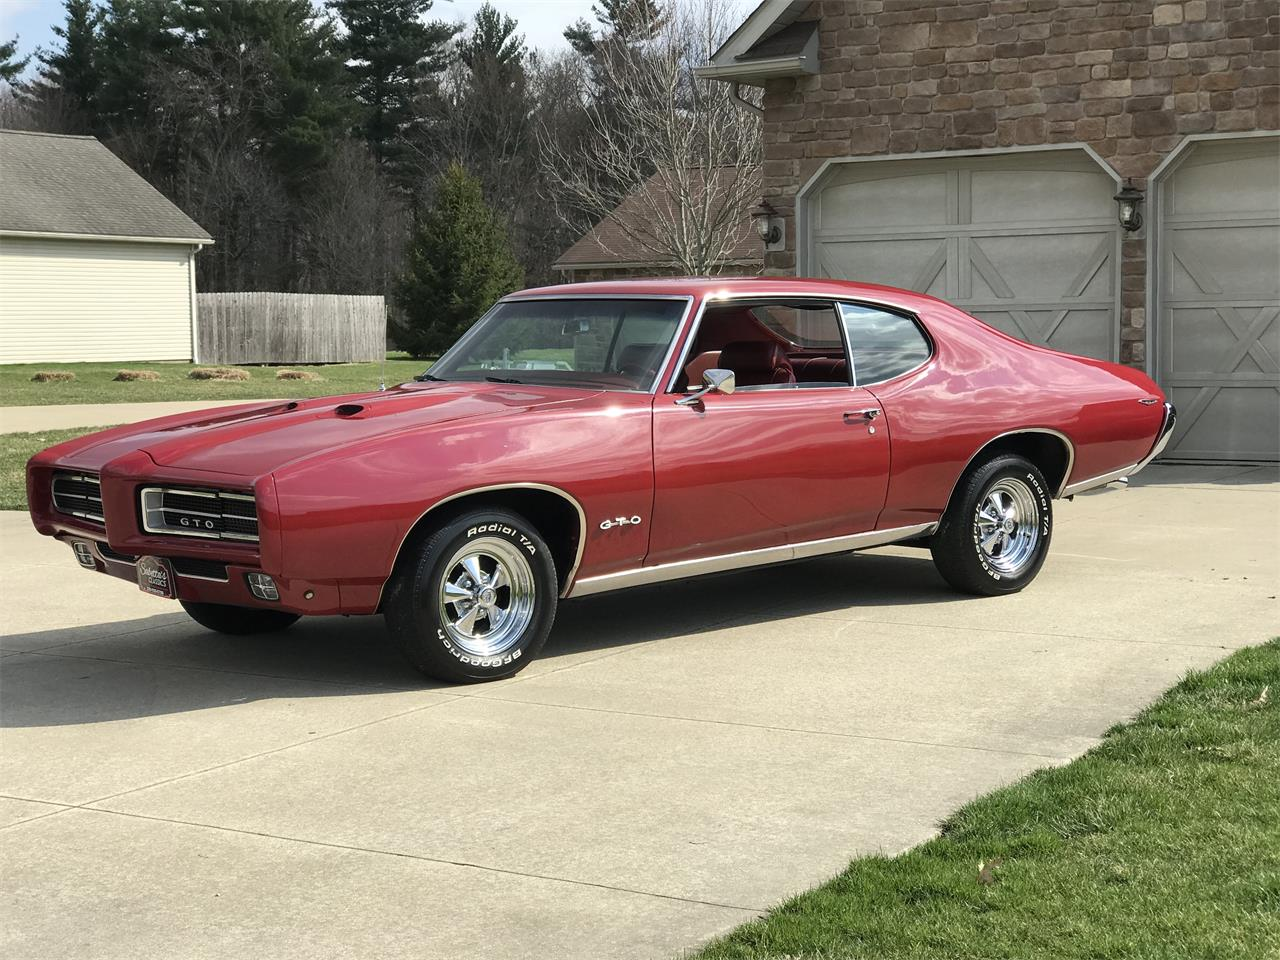 For Sale: 1969 Pontiac GTO in Orrville, Ohio